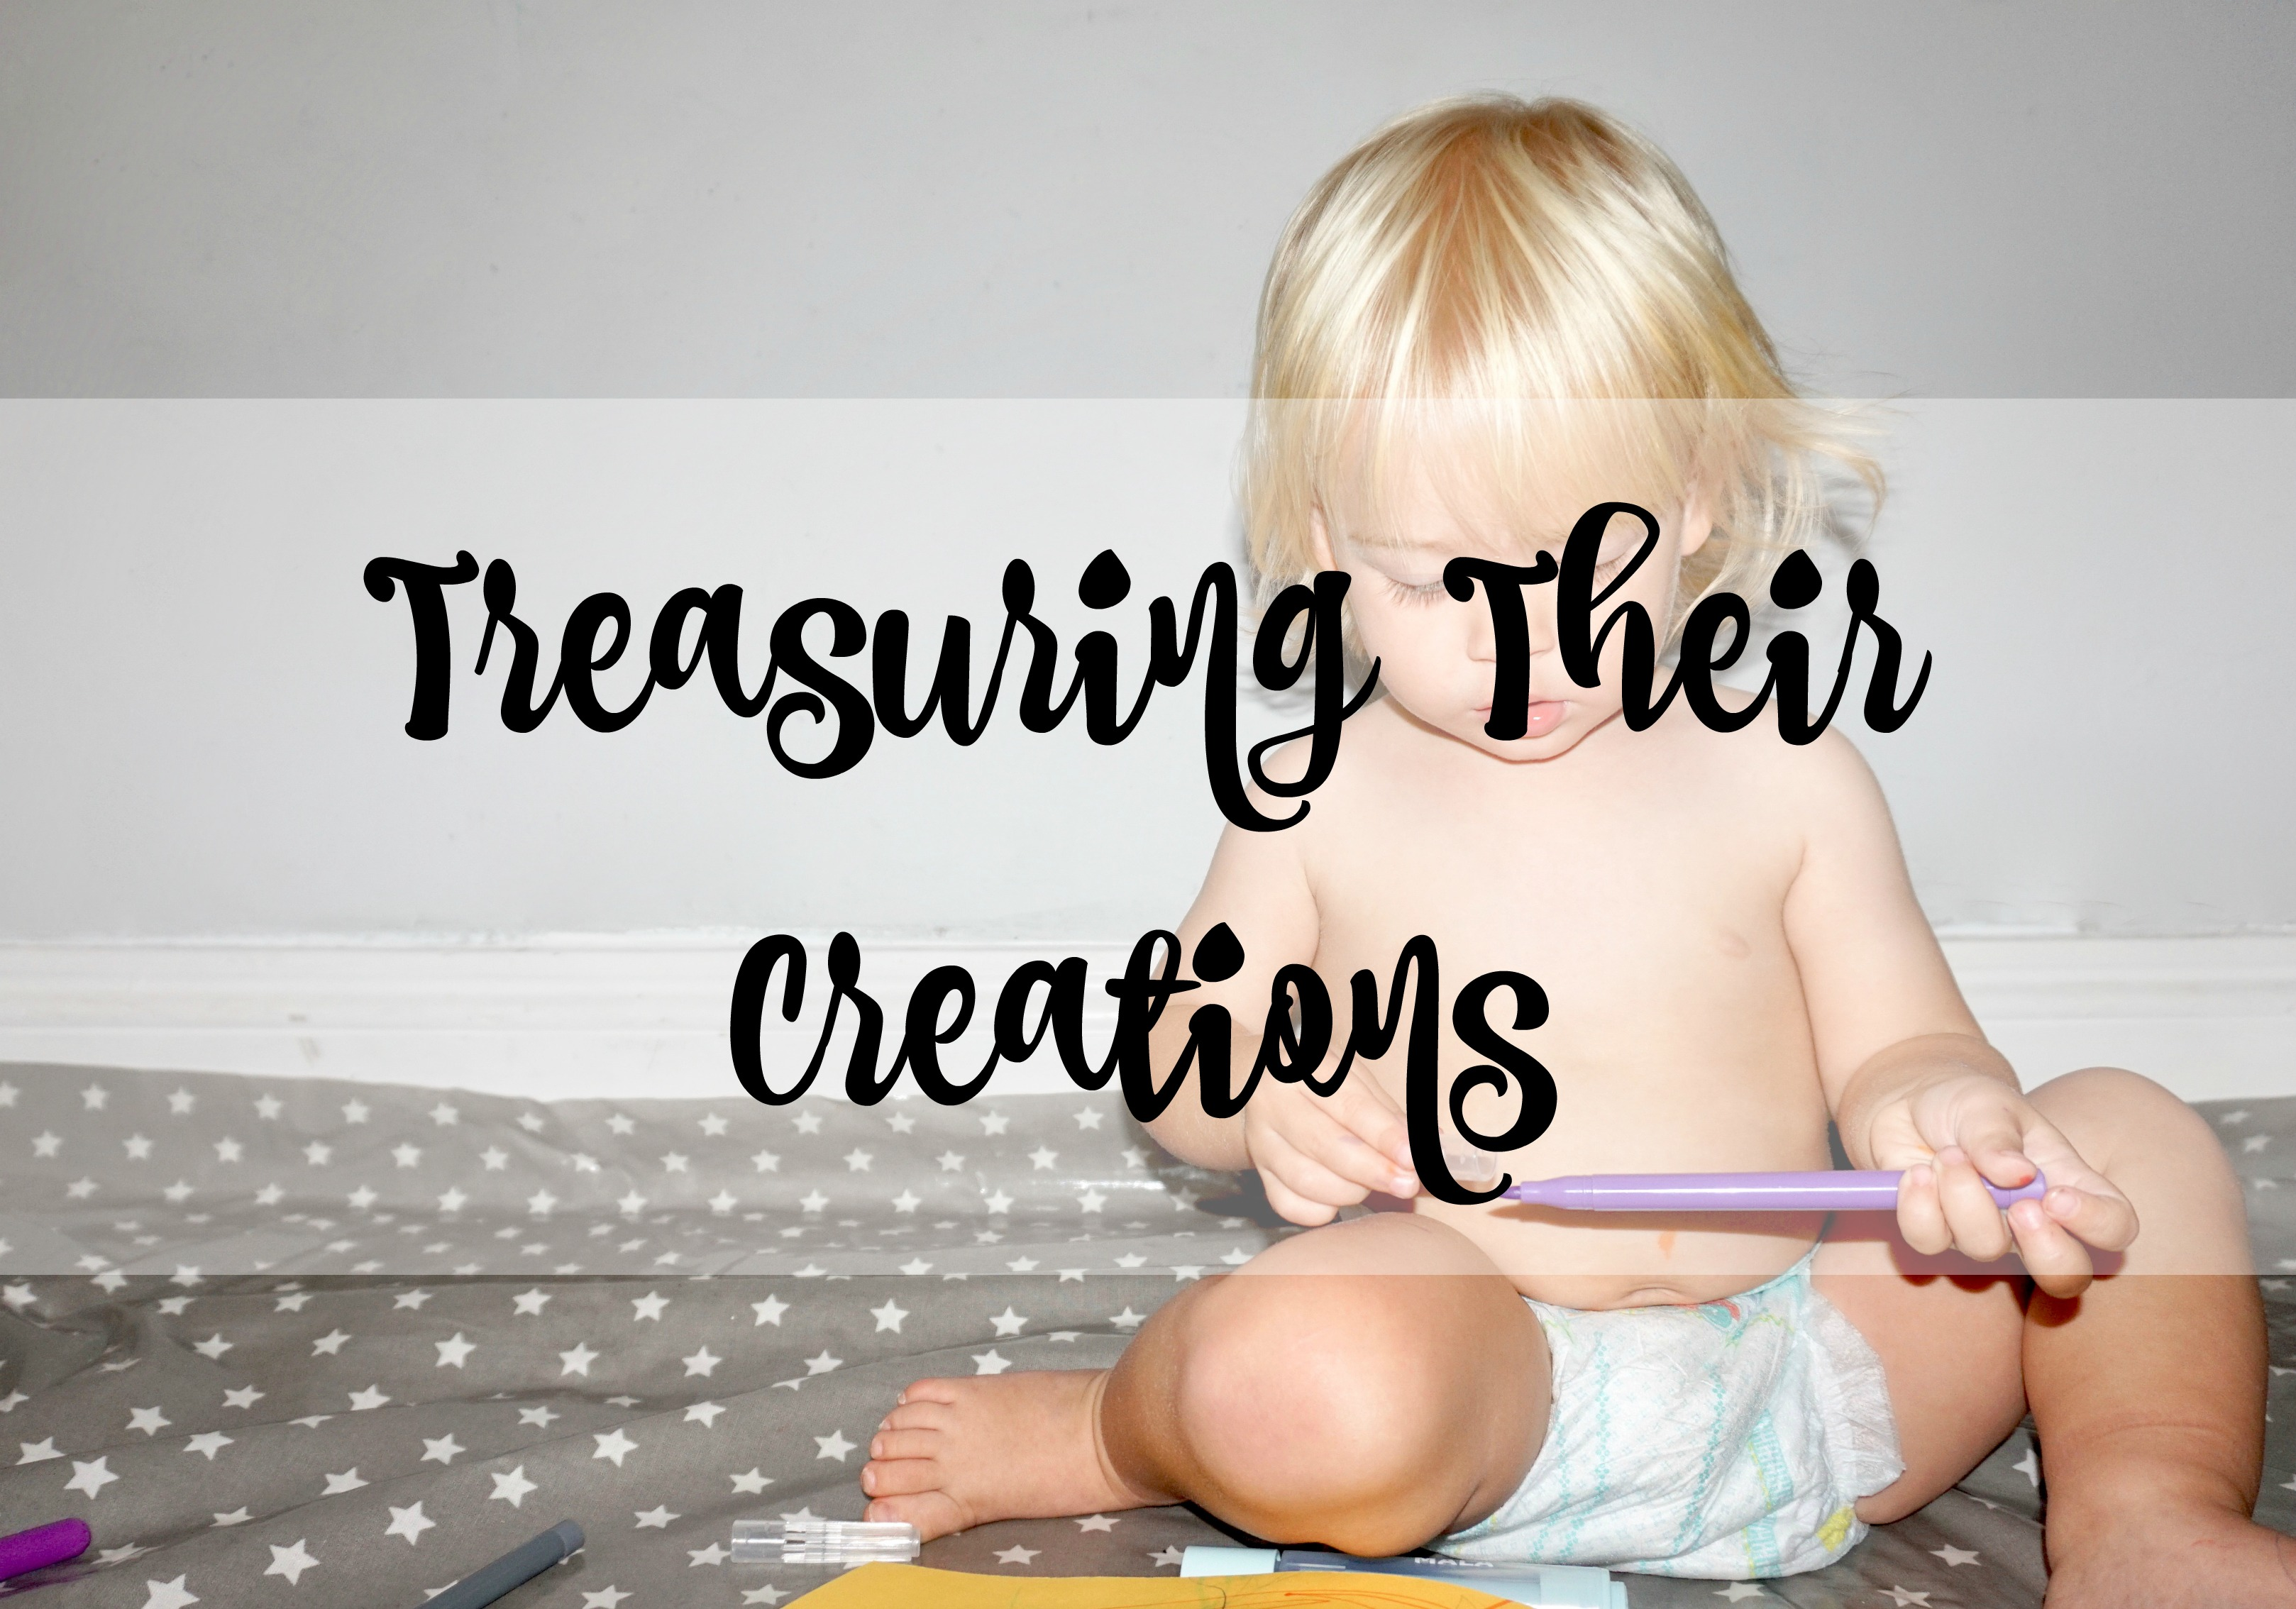 treasuring their creations title